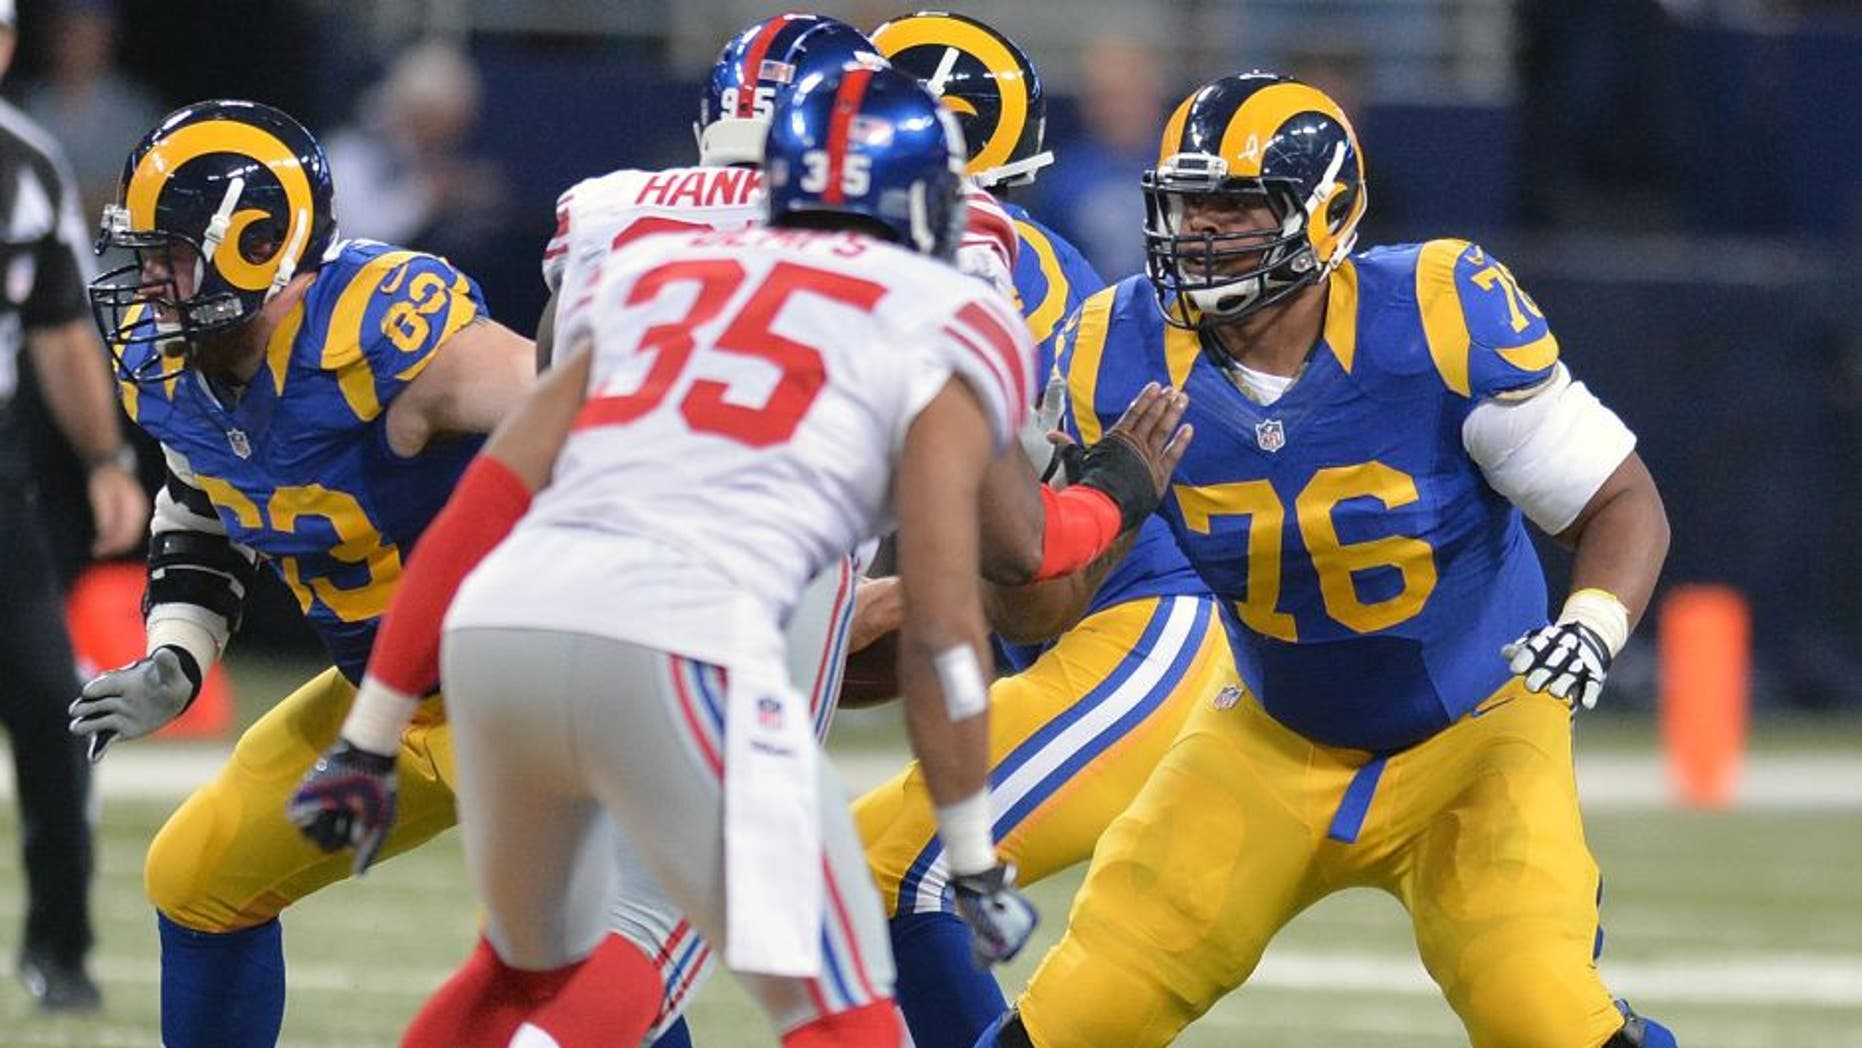 ST. LOUIS, MO - DECEMBER 21: Rodger Saffold #76 of the St. Louis Rams protects against the New York Giants at the Edward Jones Dome on December 21, 2014 in St. Louis, Missouri. (Photo by Michael Thomas/Getty Images)